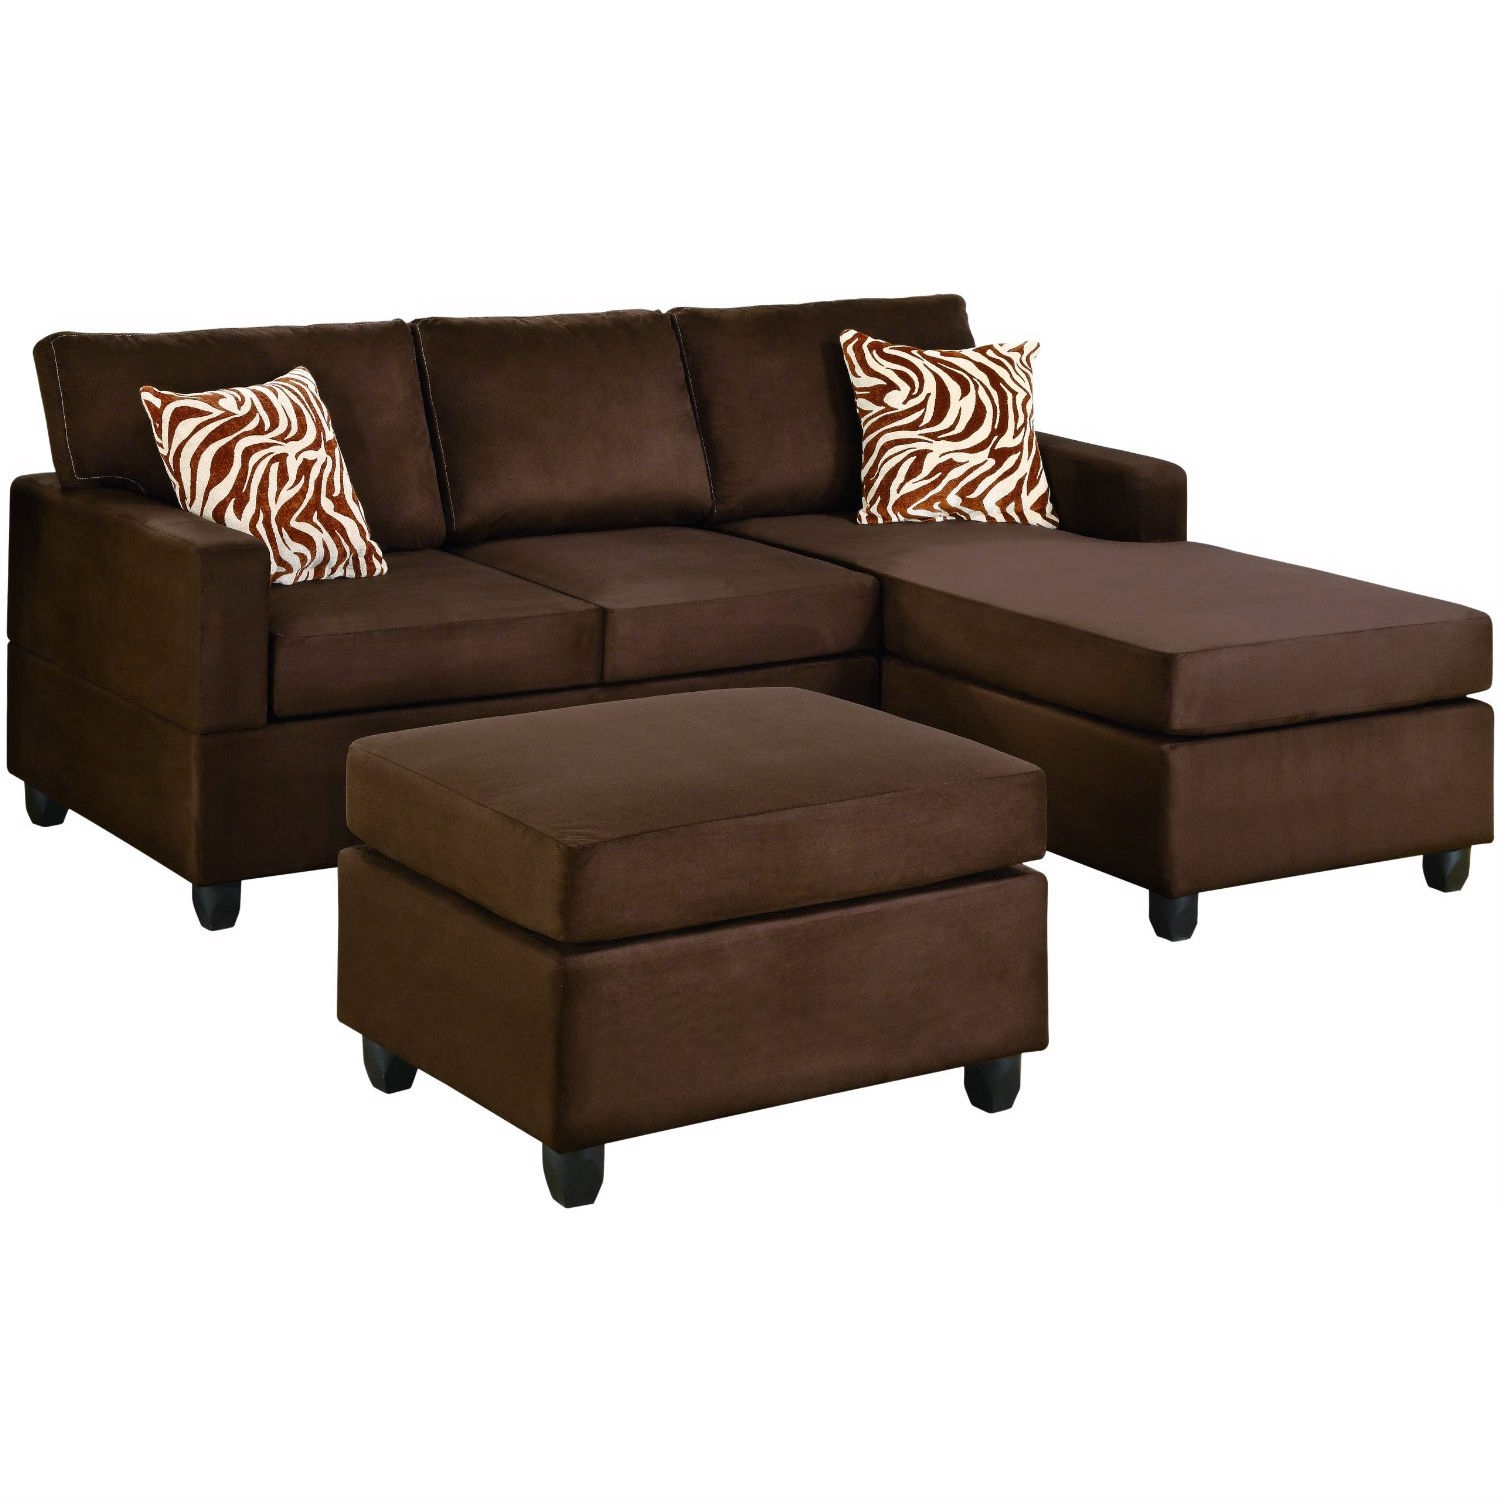 Creativeworks home decor sofas for Affordable furniture 3 piece sectional in wyoming saddle